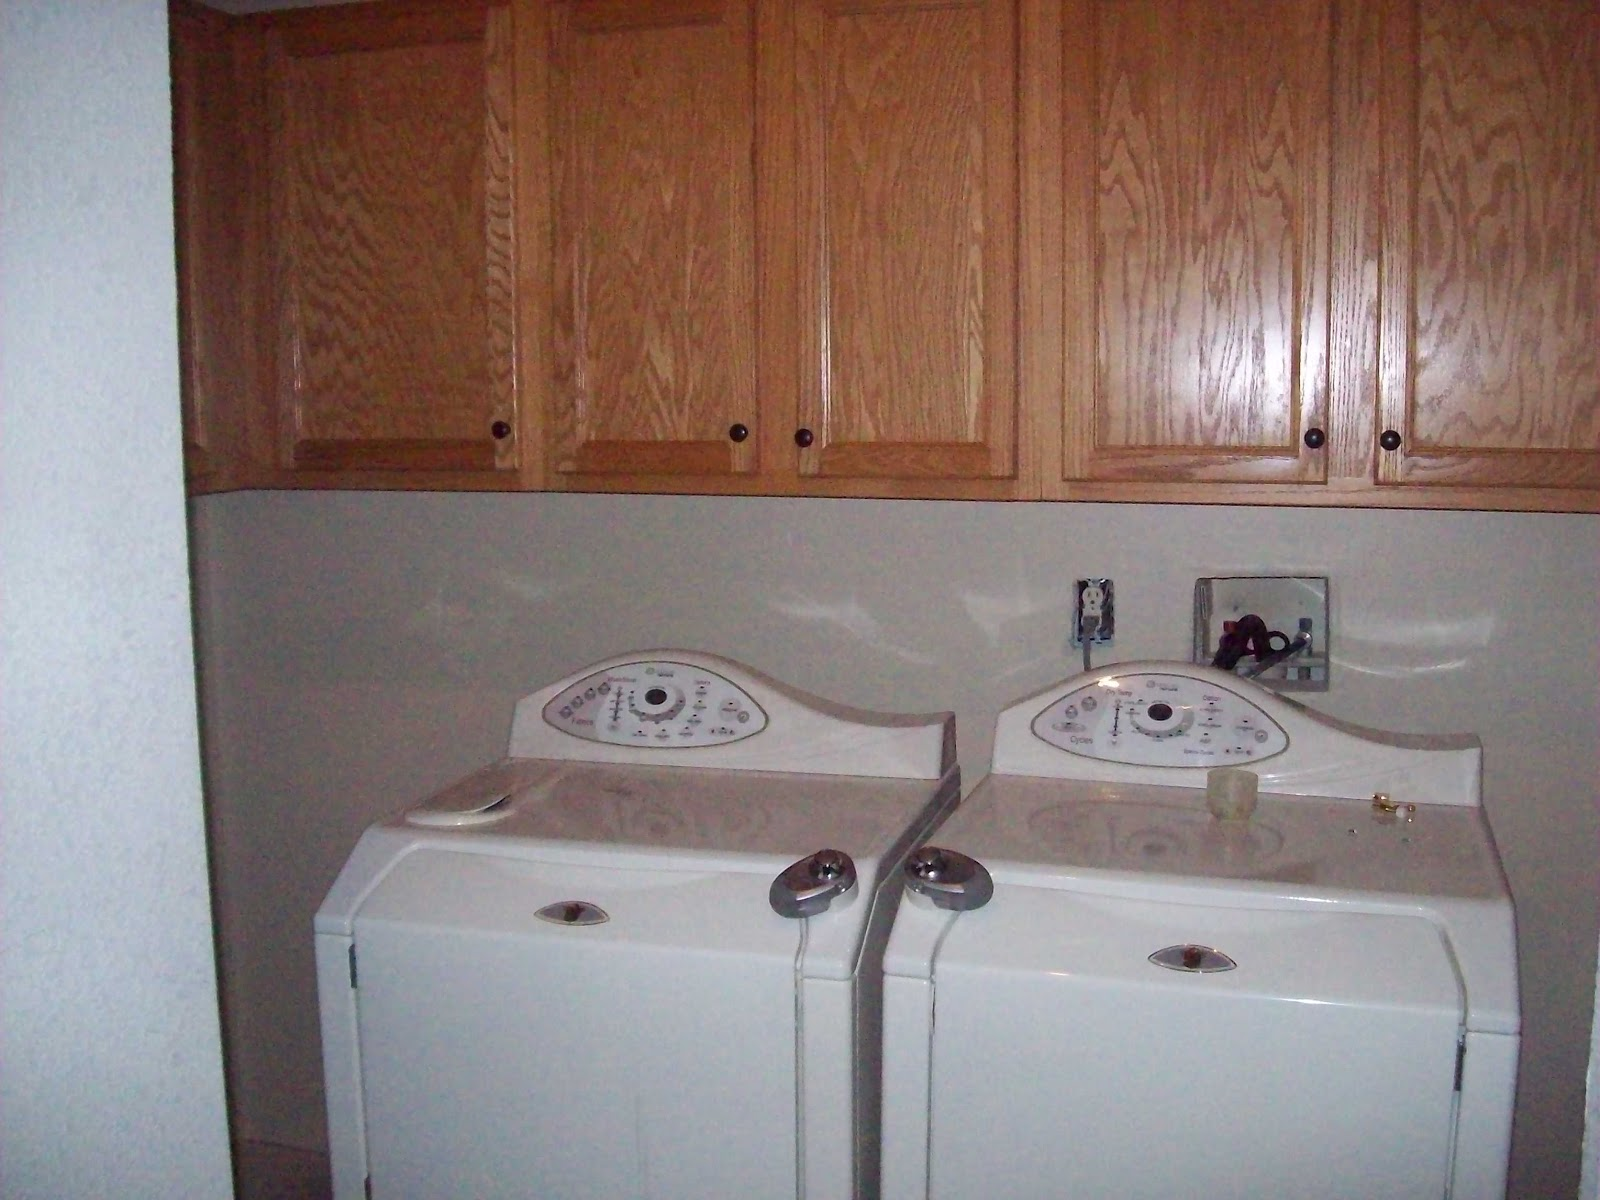 Reuse Kitchen Cabinets 28 Reuse Kitchen Cabinets Reuse Those Cabinets Put The